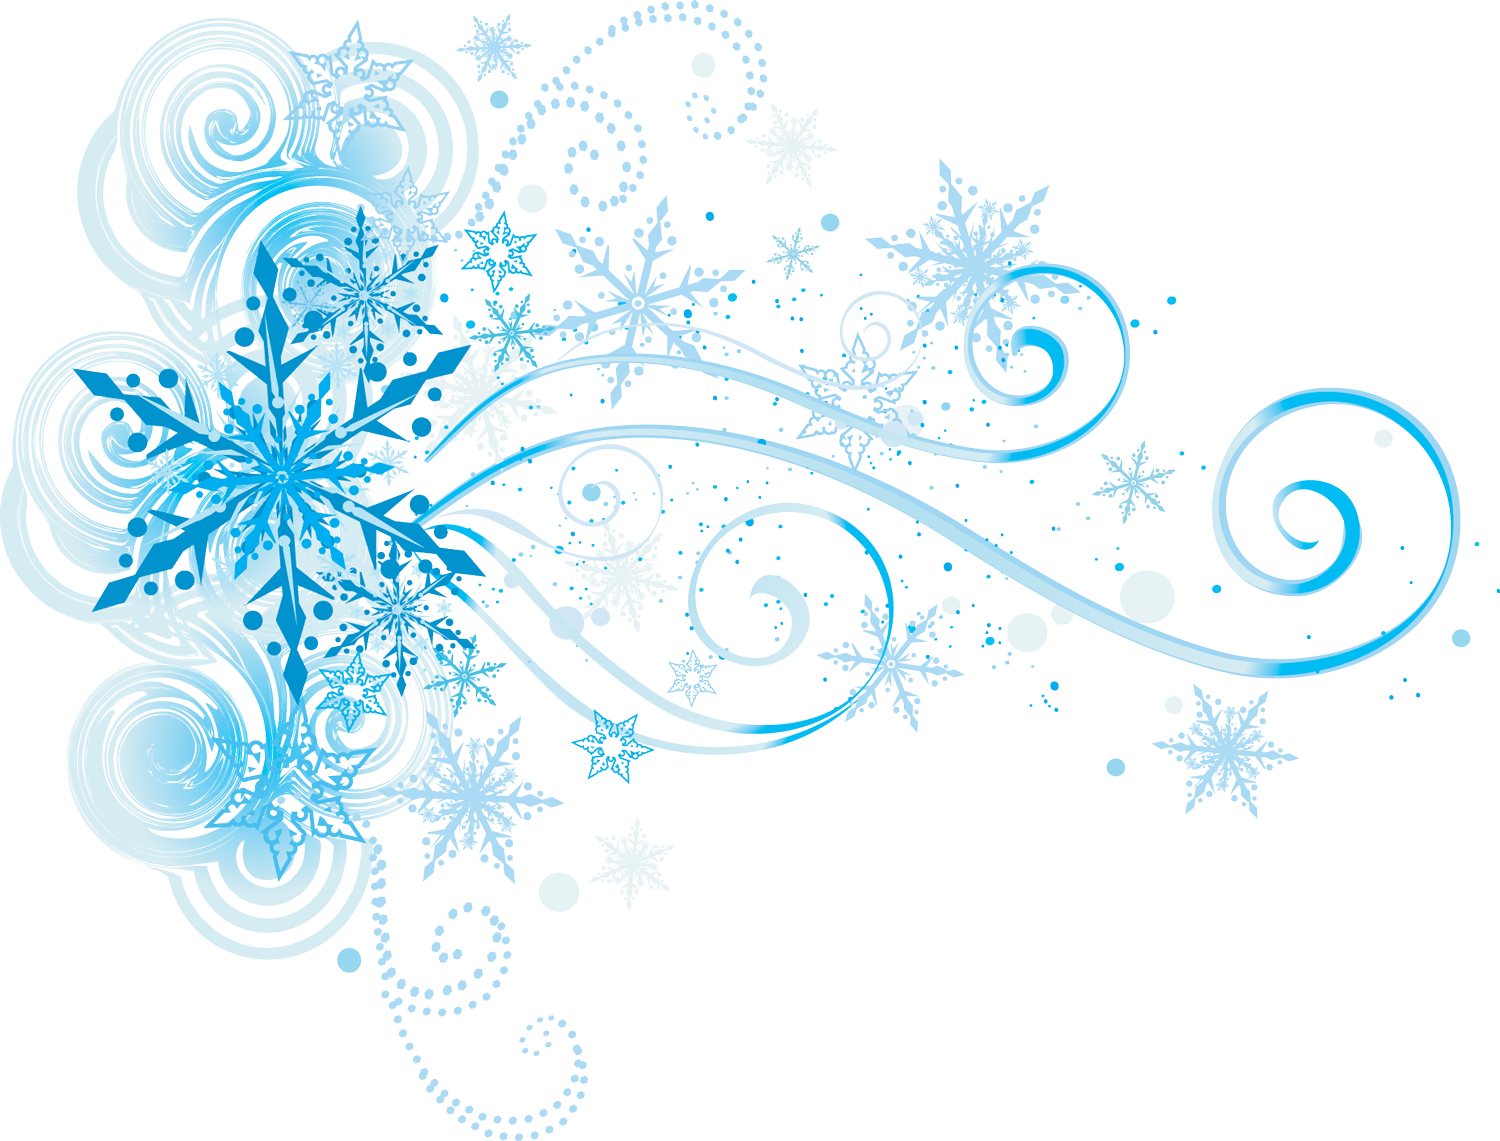 Winter clipart flake. A bit over the